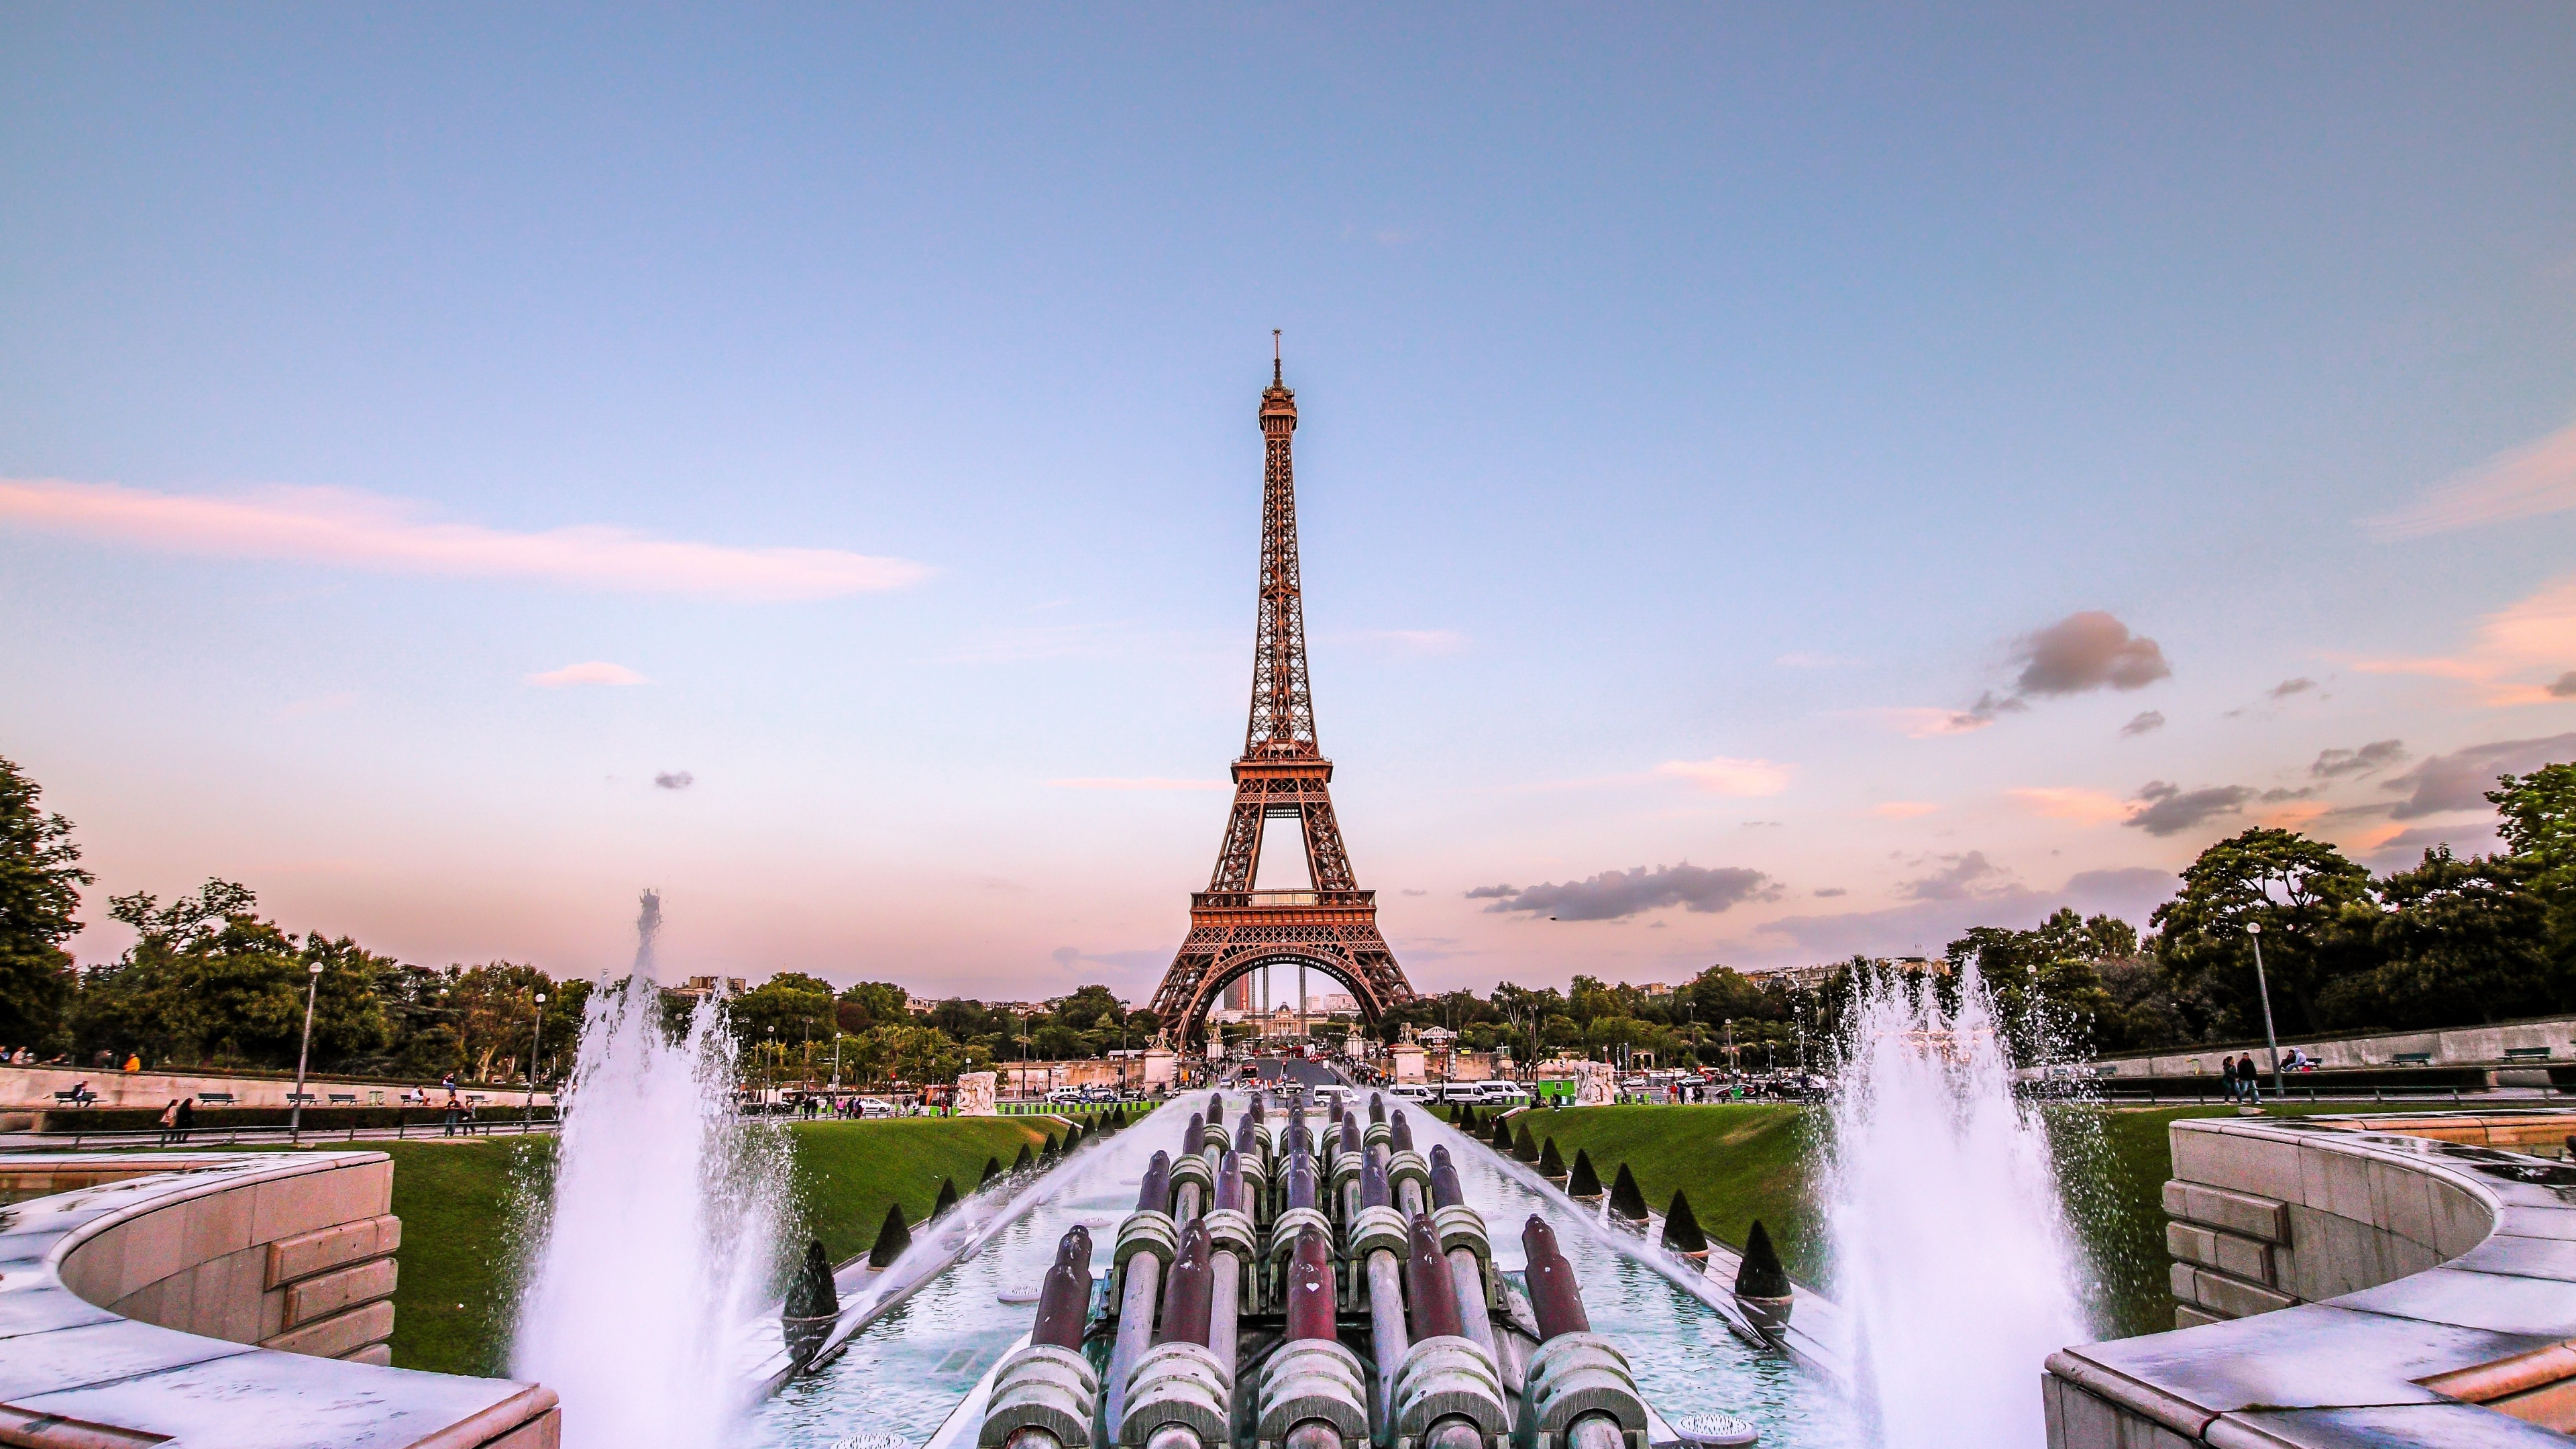 4k eiffel tower wallpapers high quality | download free